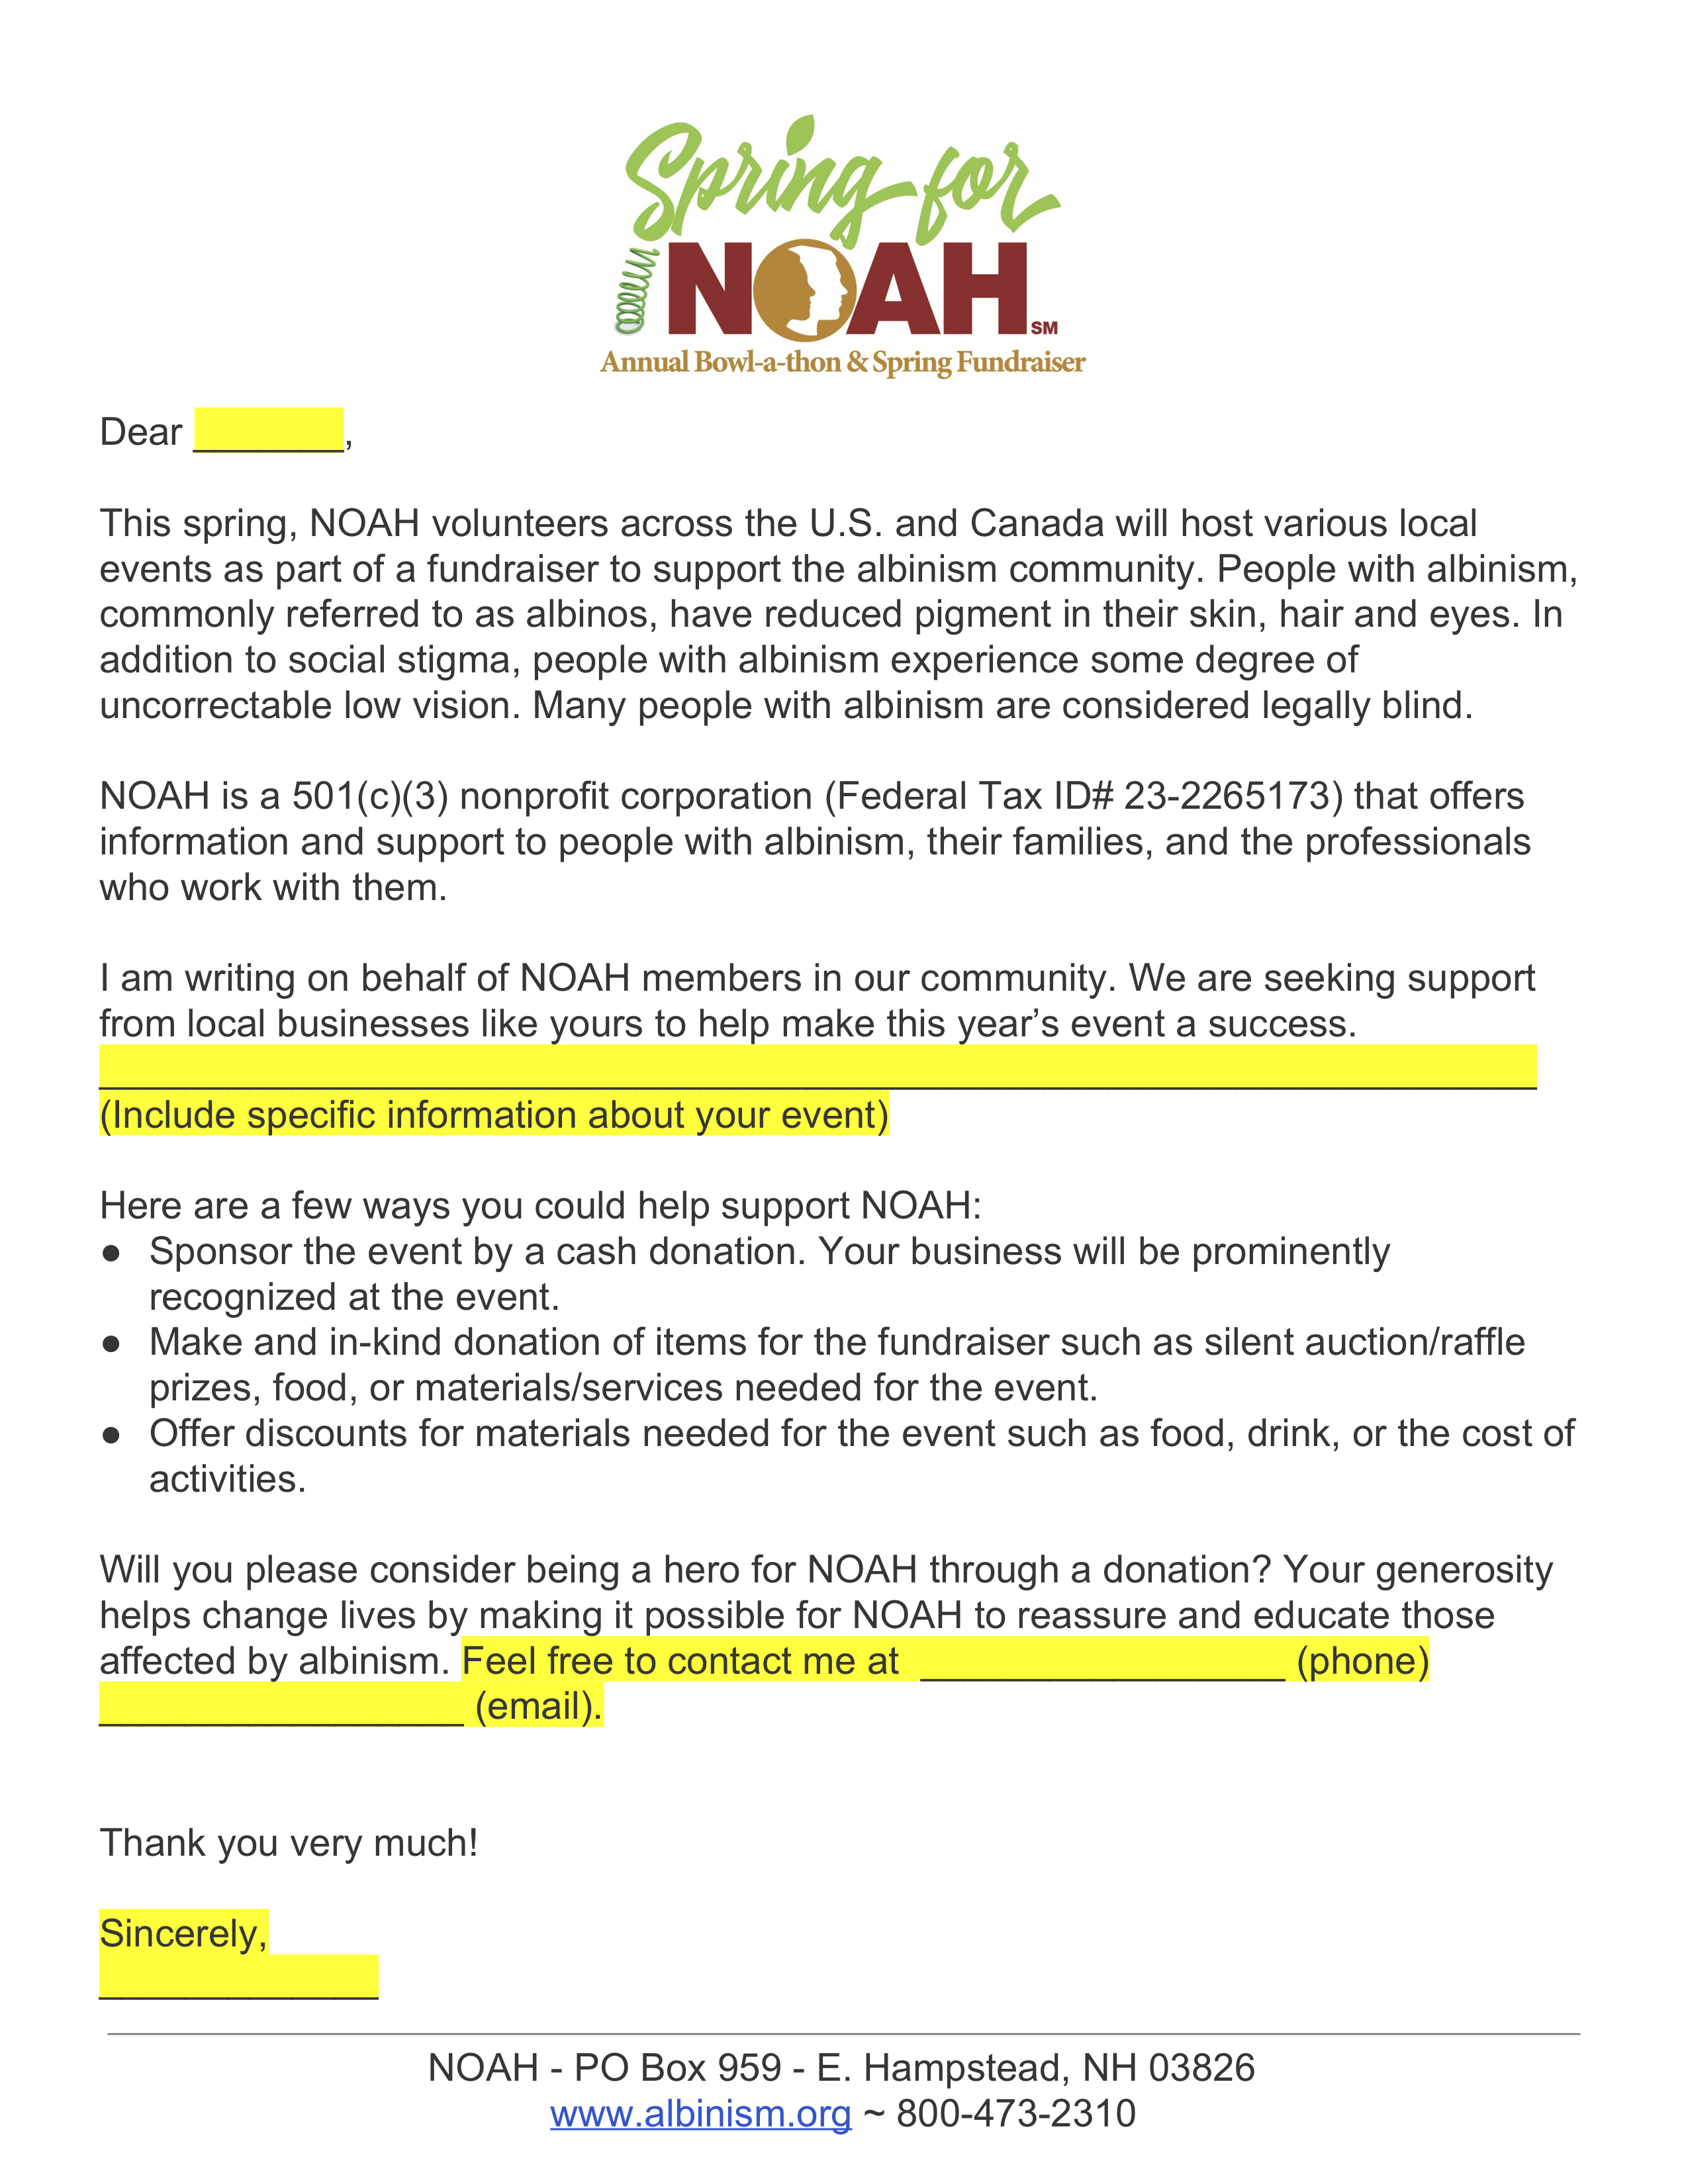 Spring for NOAH Fundraiser Business Solicitation Letter